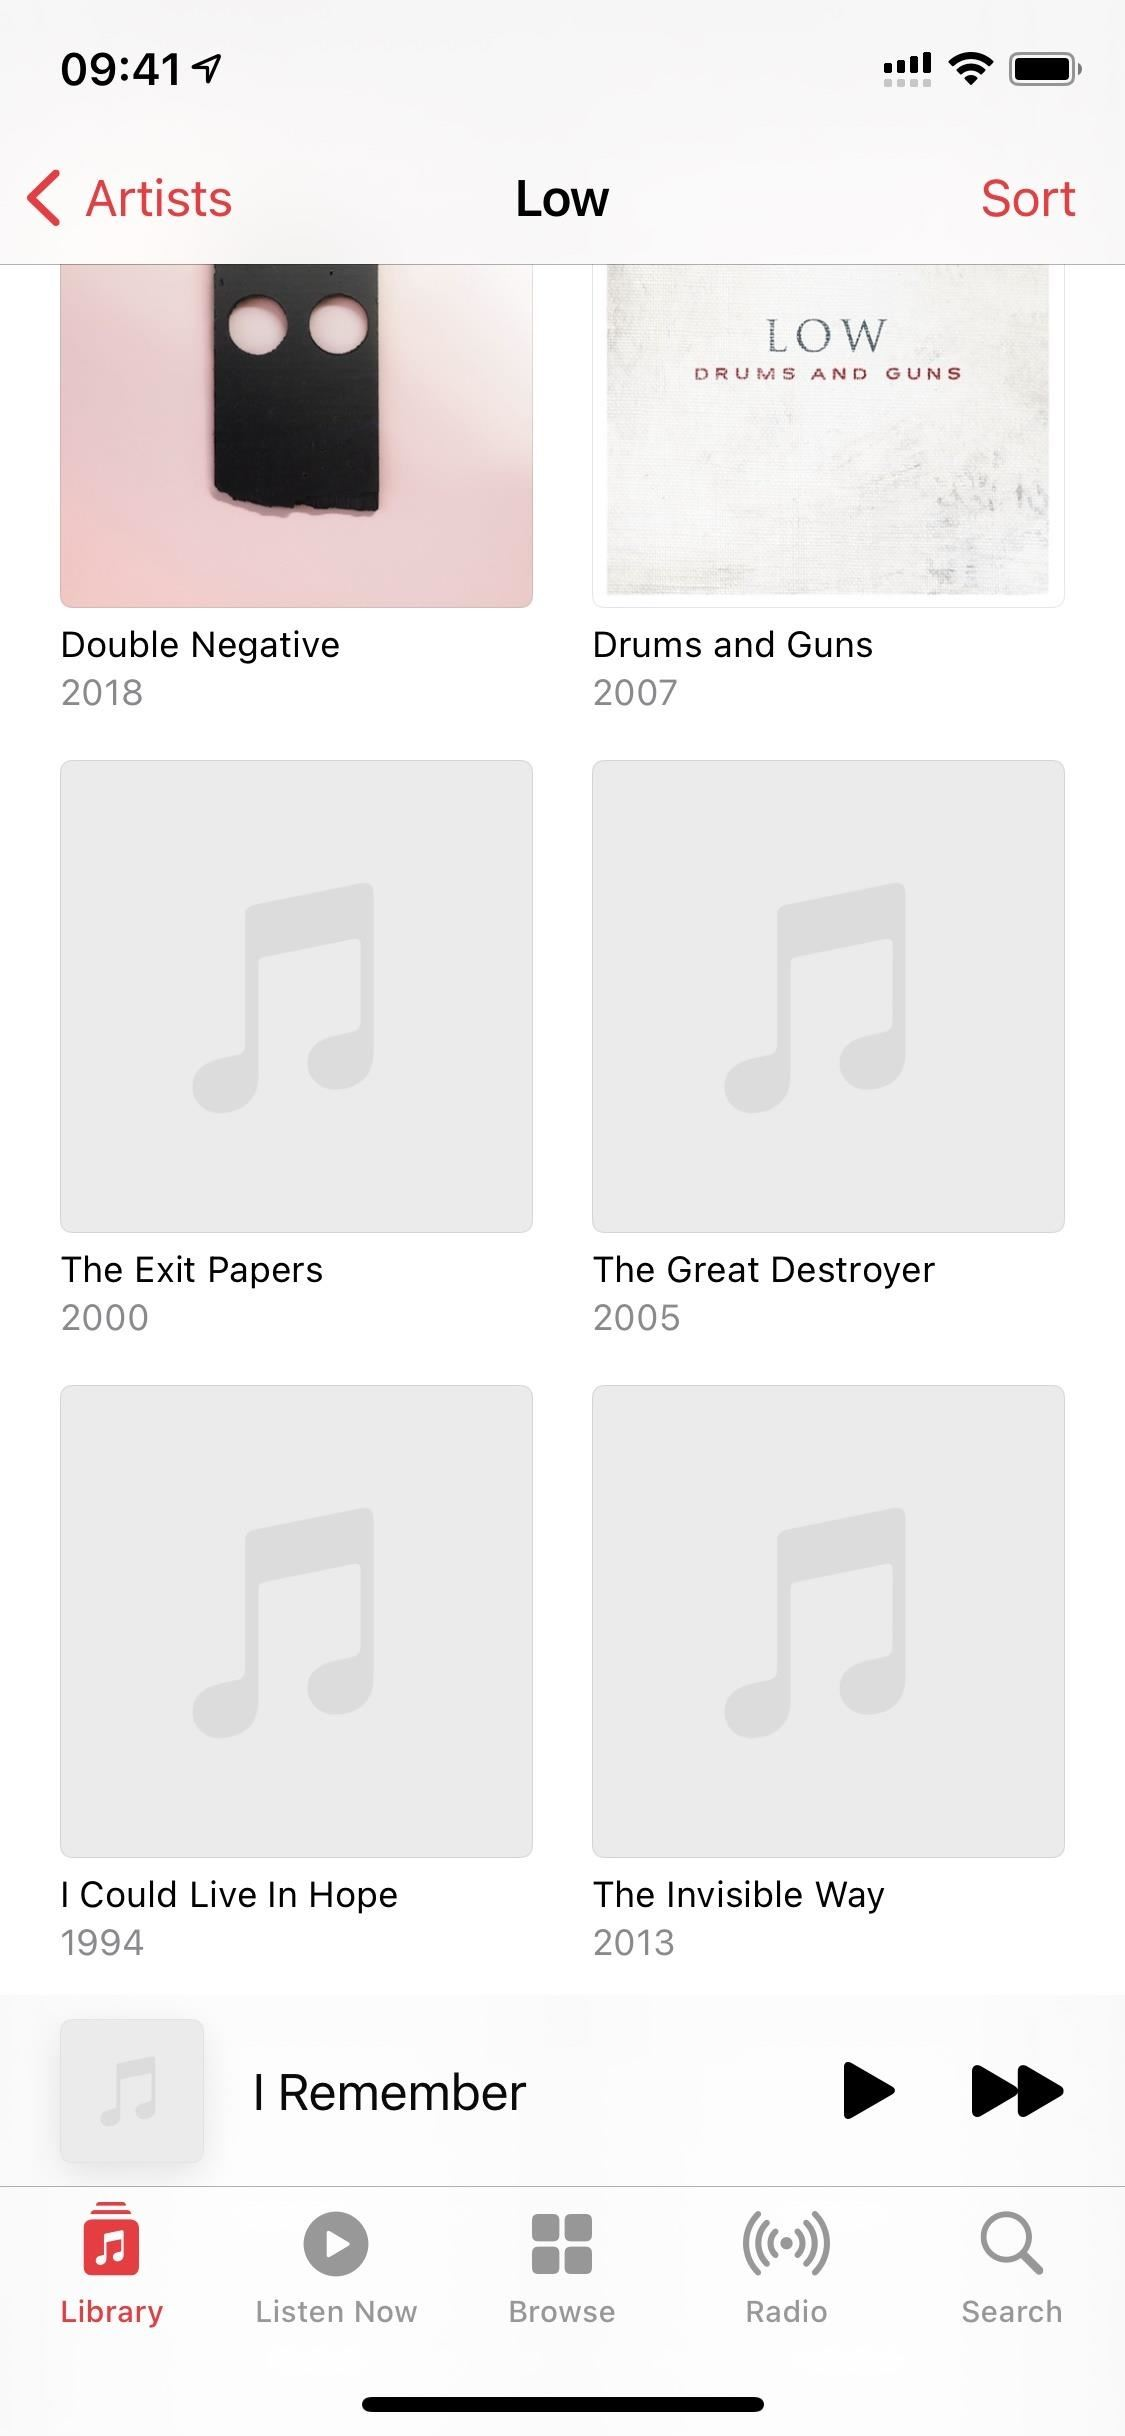 How to Remove the 'Browse' & 'Listen Now' Tabs for Apple Music on Your iPhone to Keep the Focus on Your Library